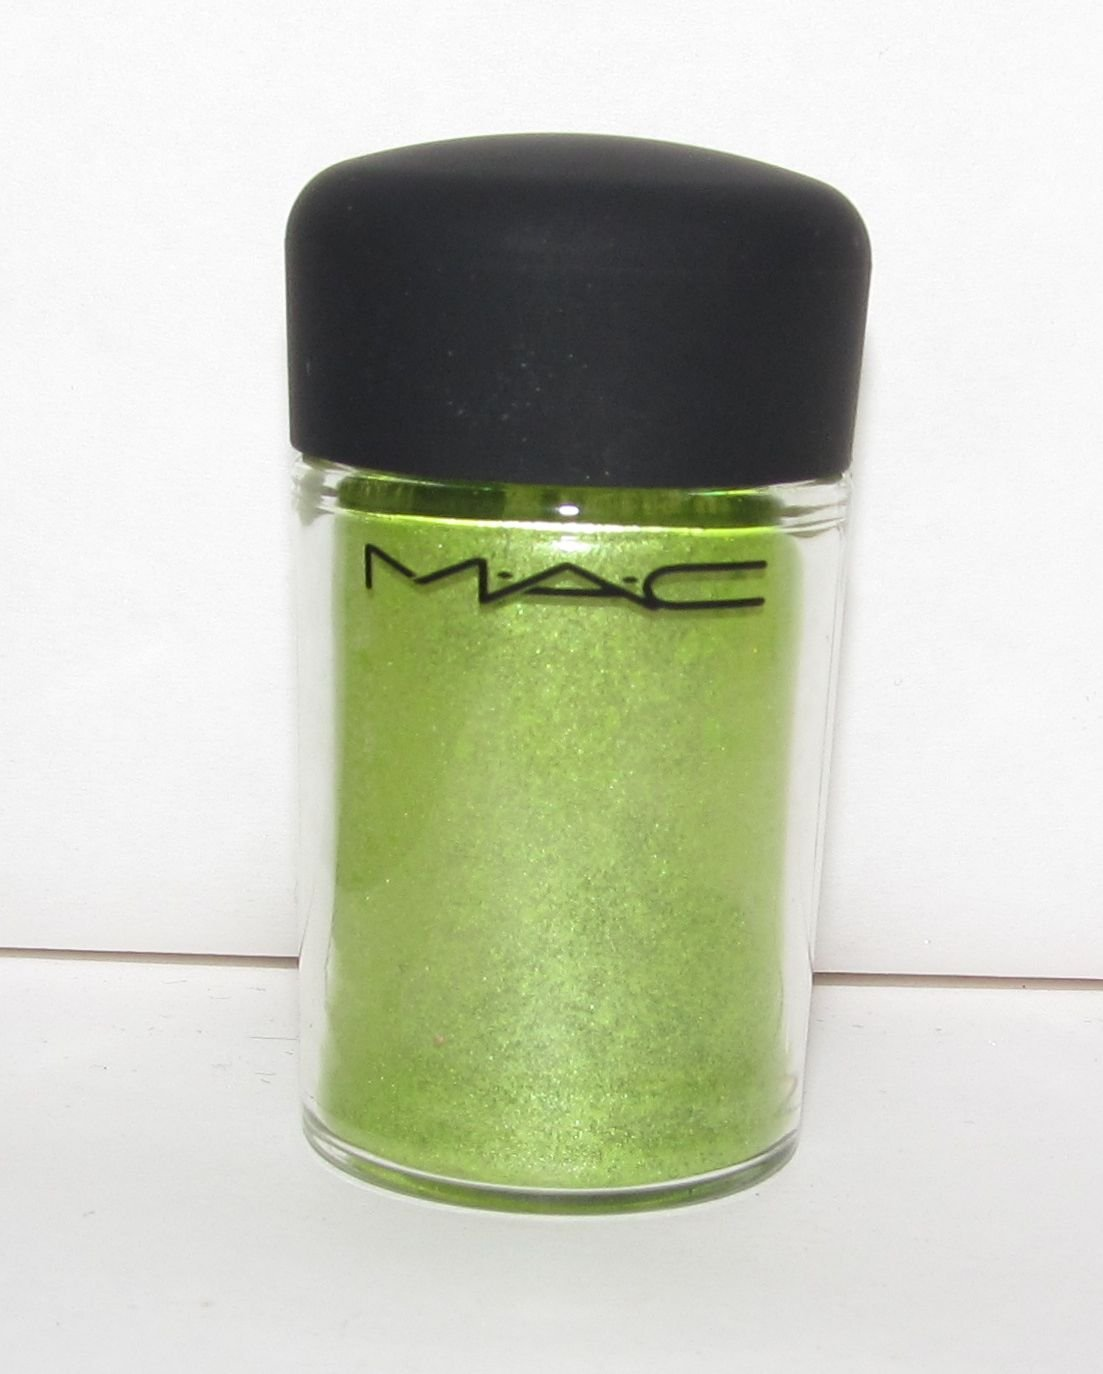 MAC Pigment Sample - Chartreuse Bouquet 1/4 tsp Sample in Original Jar